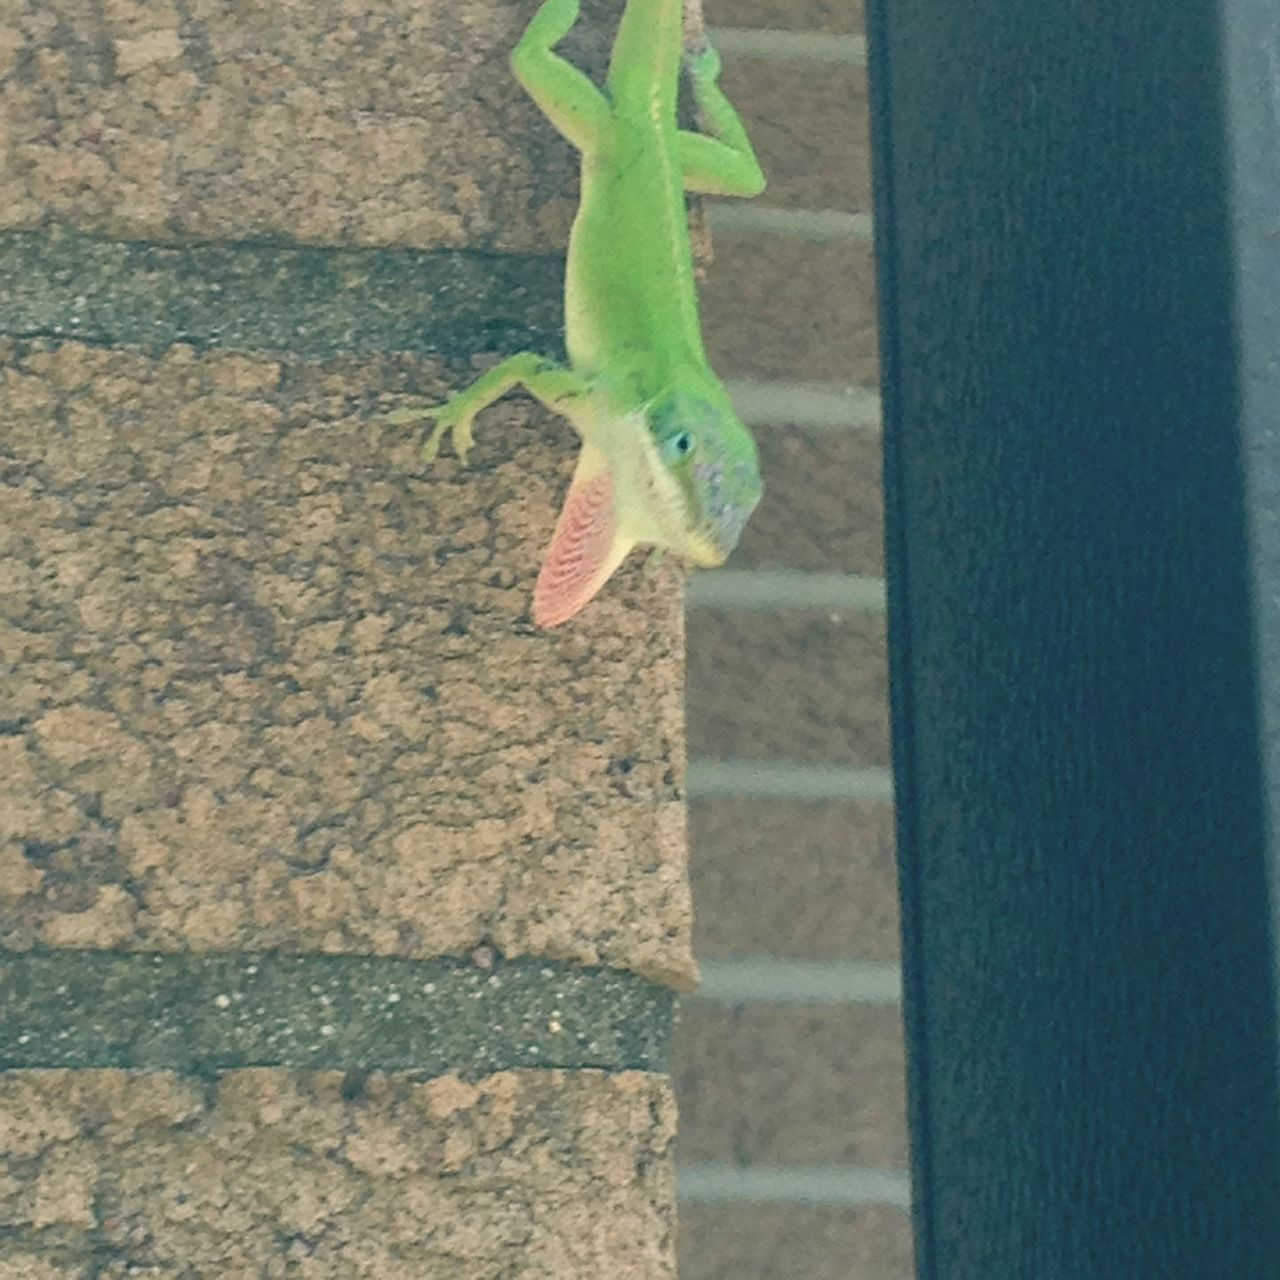 Lizard Gecko Green Animal Wildlife Wall Sticking South Hanging Out Hanging Around Nature Outdoors No People Animal Themes Cute Warm Day Close-up